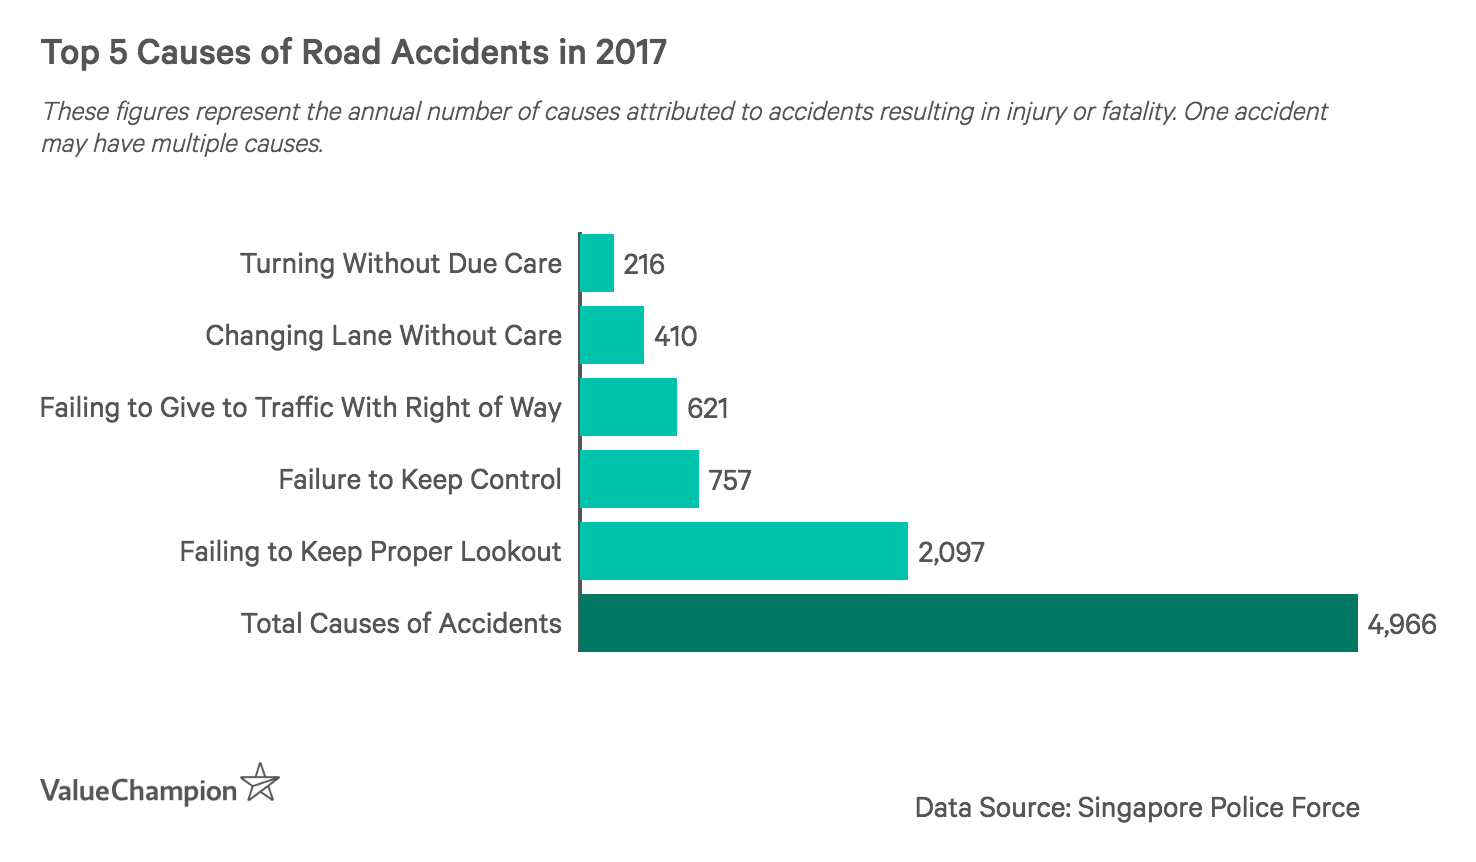 This graph the top 5 causes attributed to road accidents in 2017, with failure to keep a proper lookout accounting for 42% of all accident causes